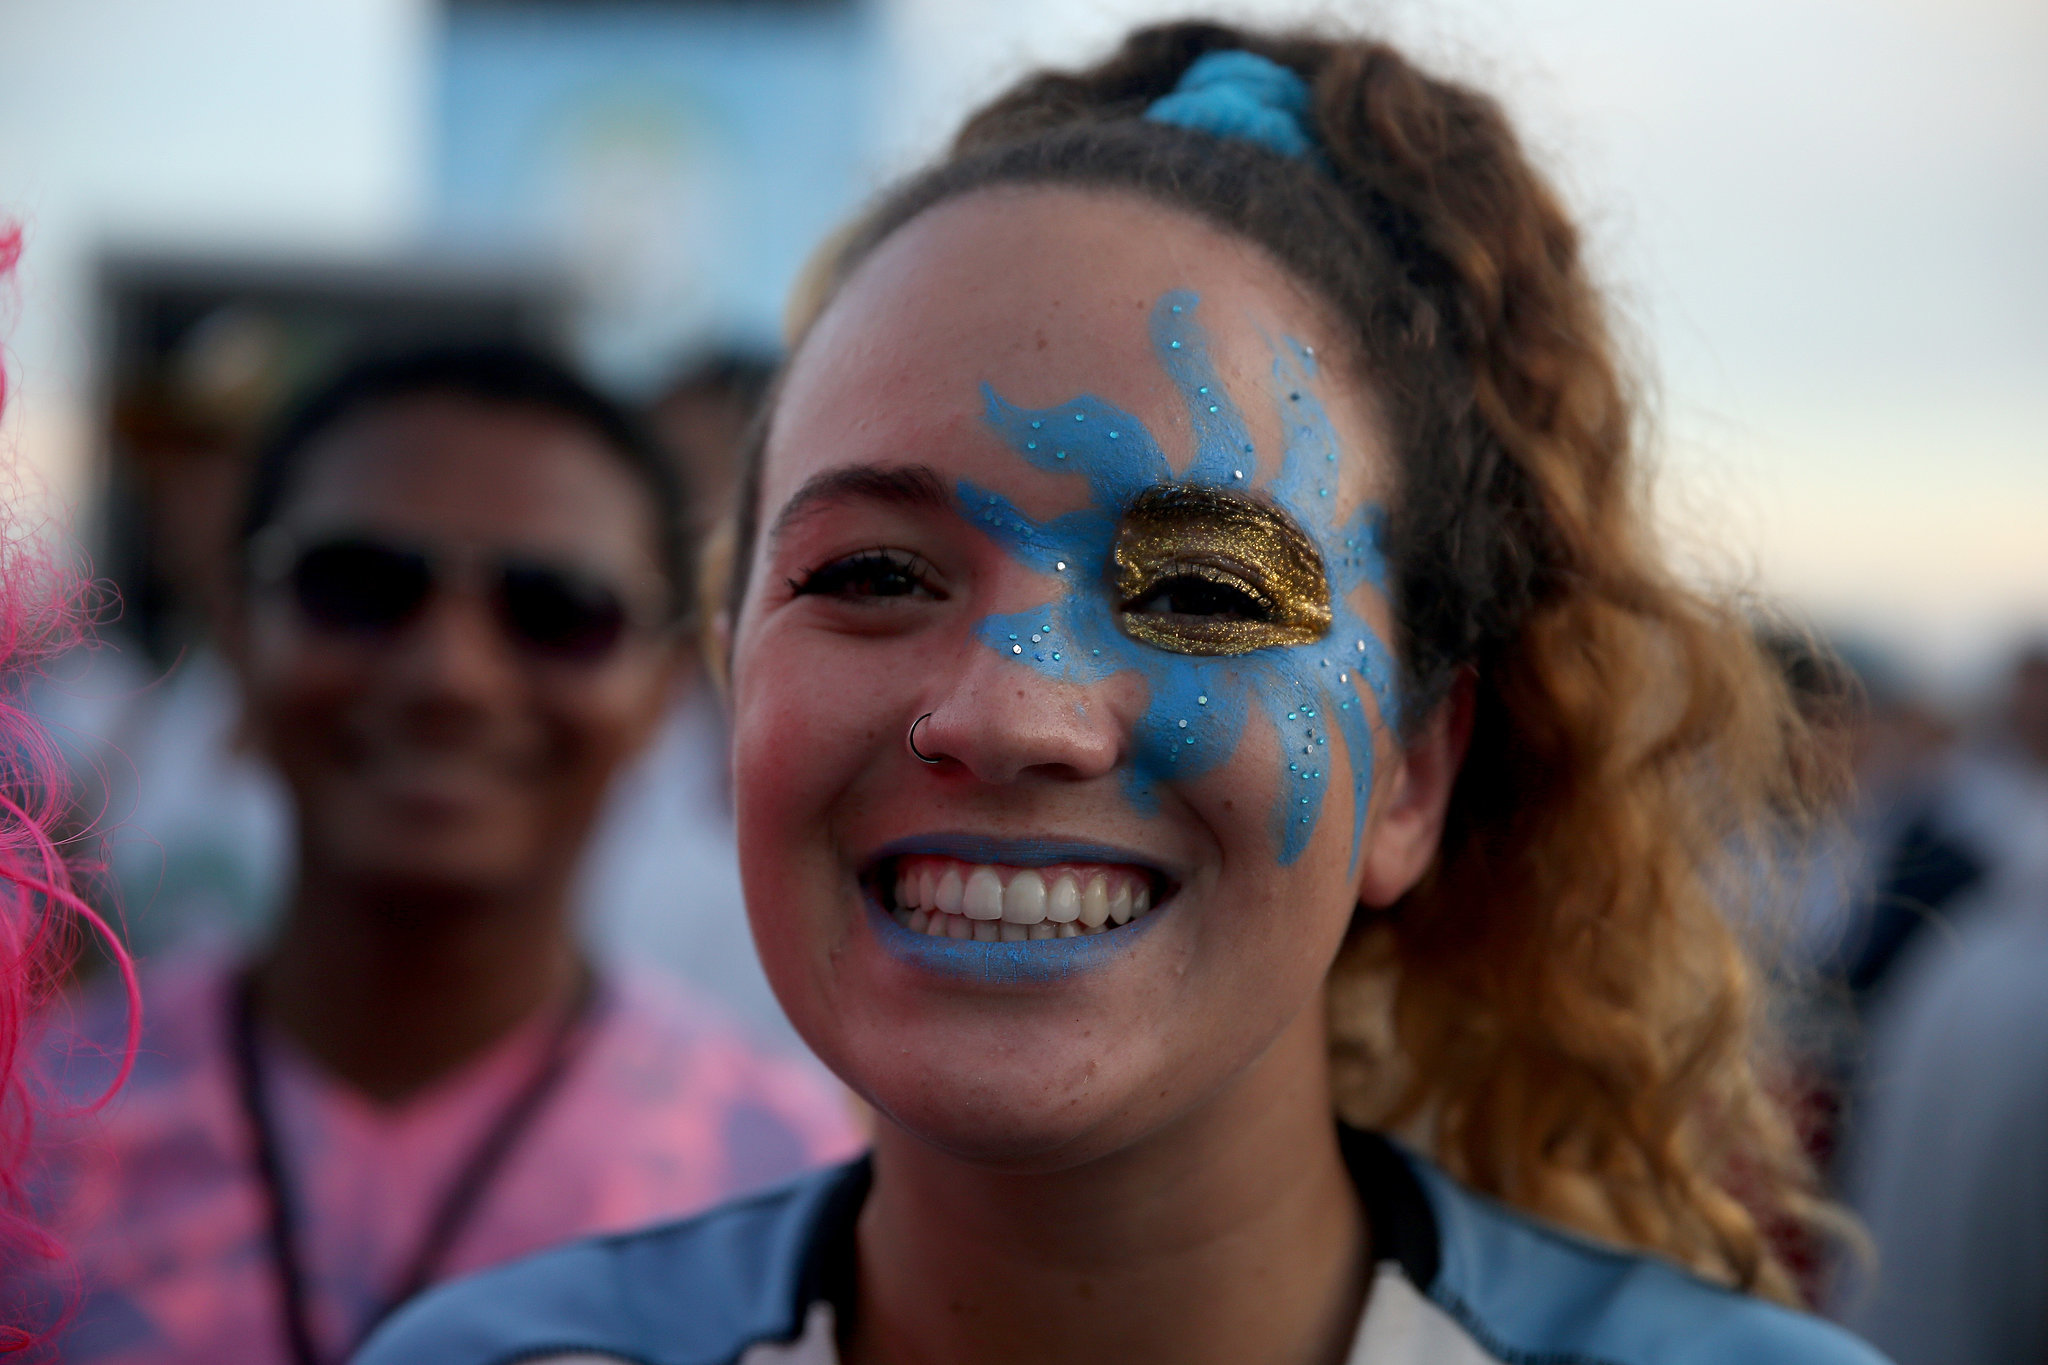 A Uruguay soccer fan wore face paint to watch her team play against Costa Rica.